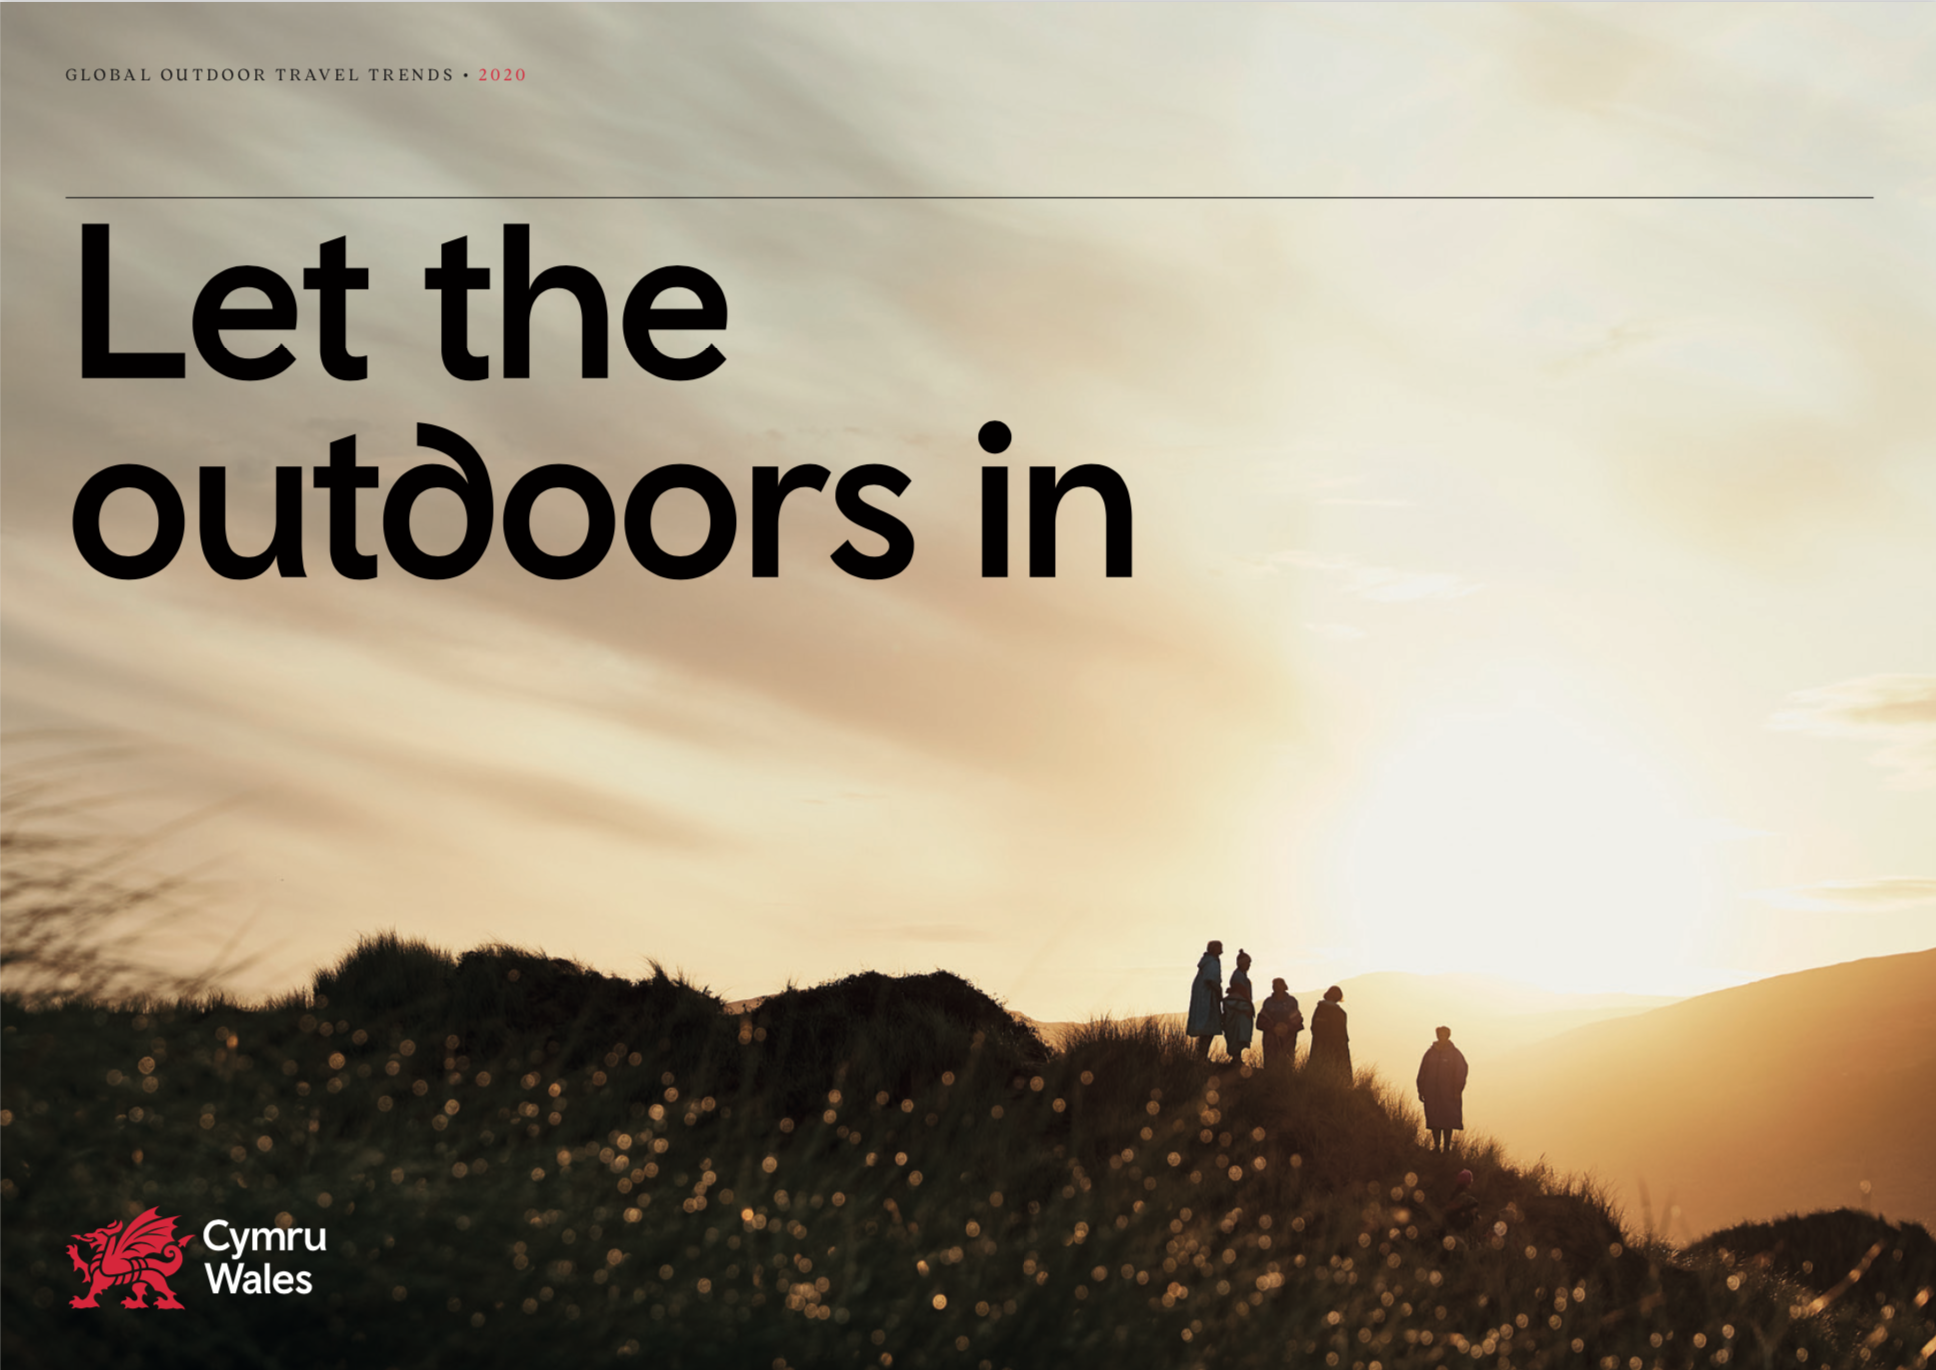 Five outdoor trends being boosted by Visit Wales